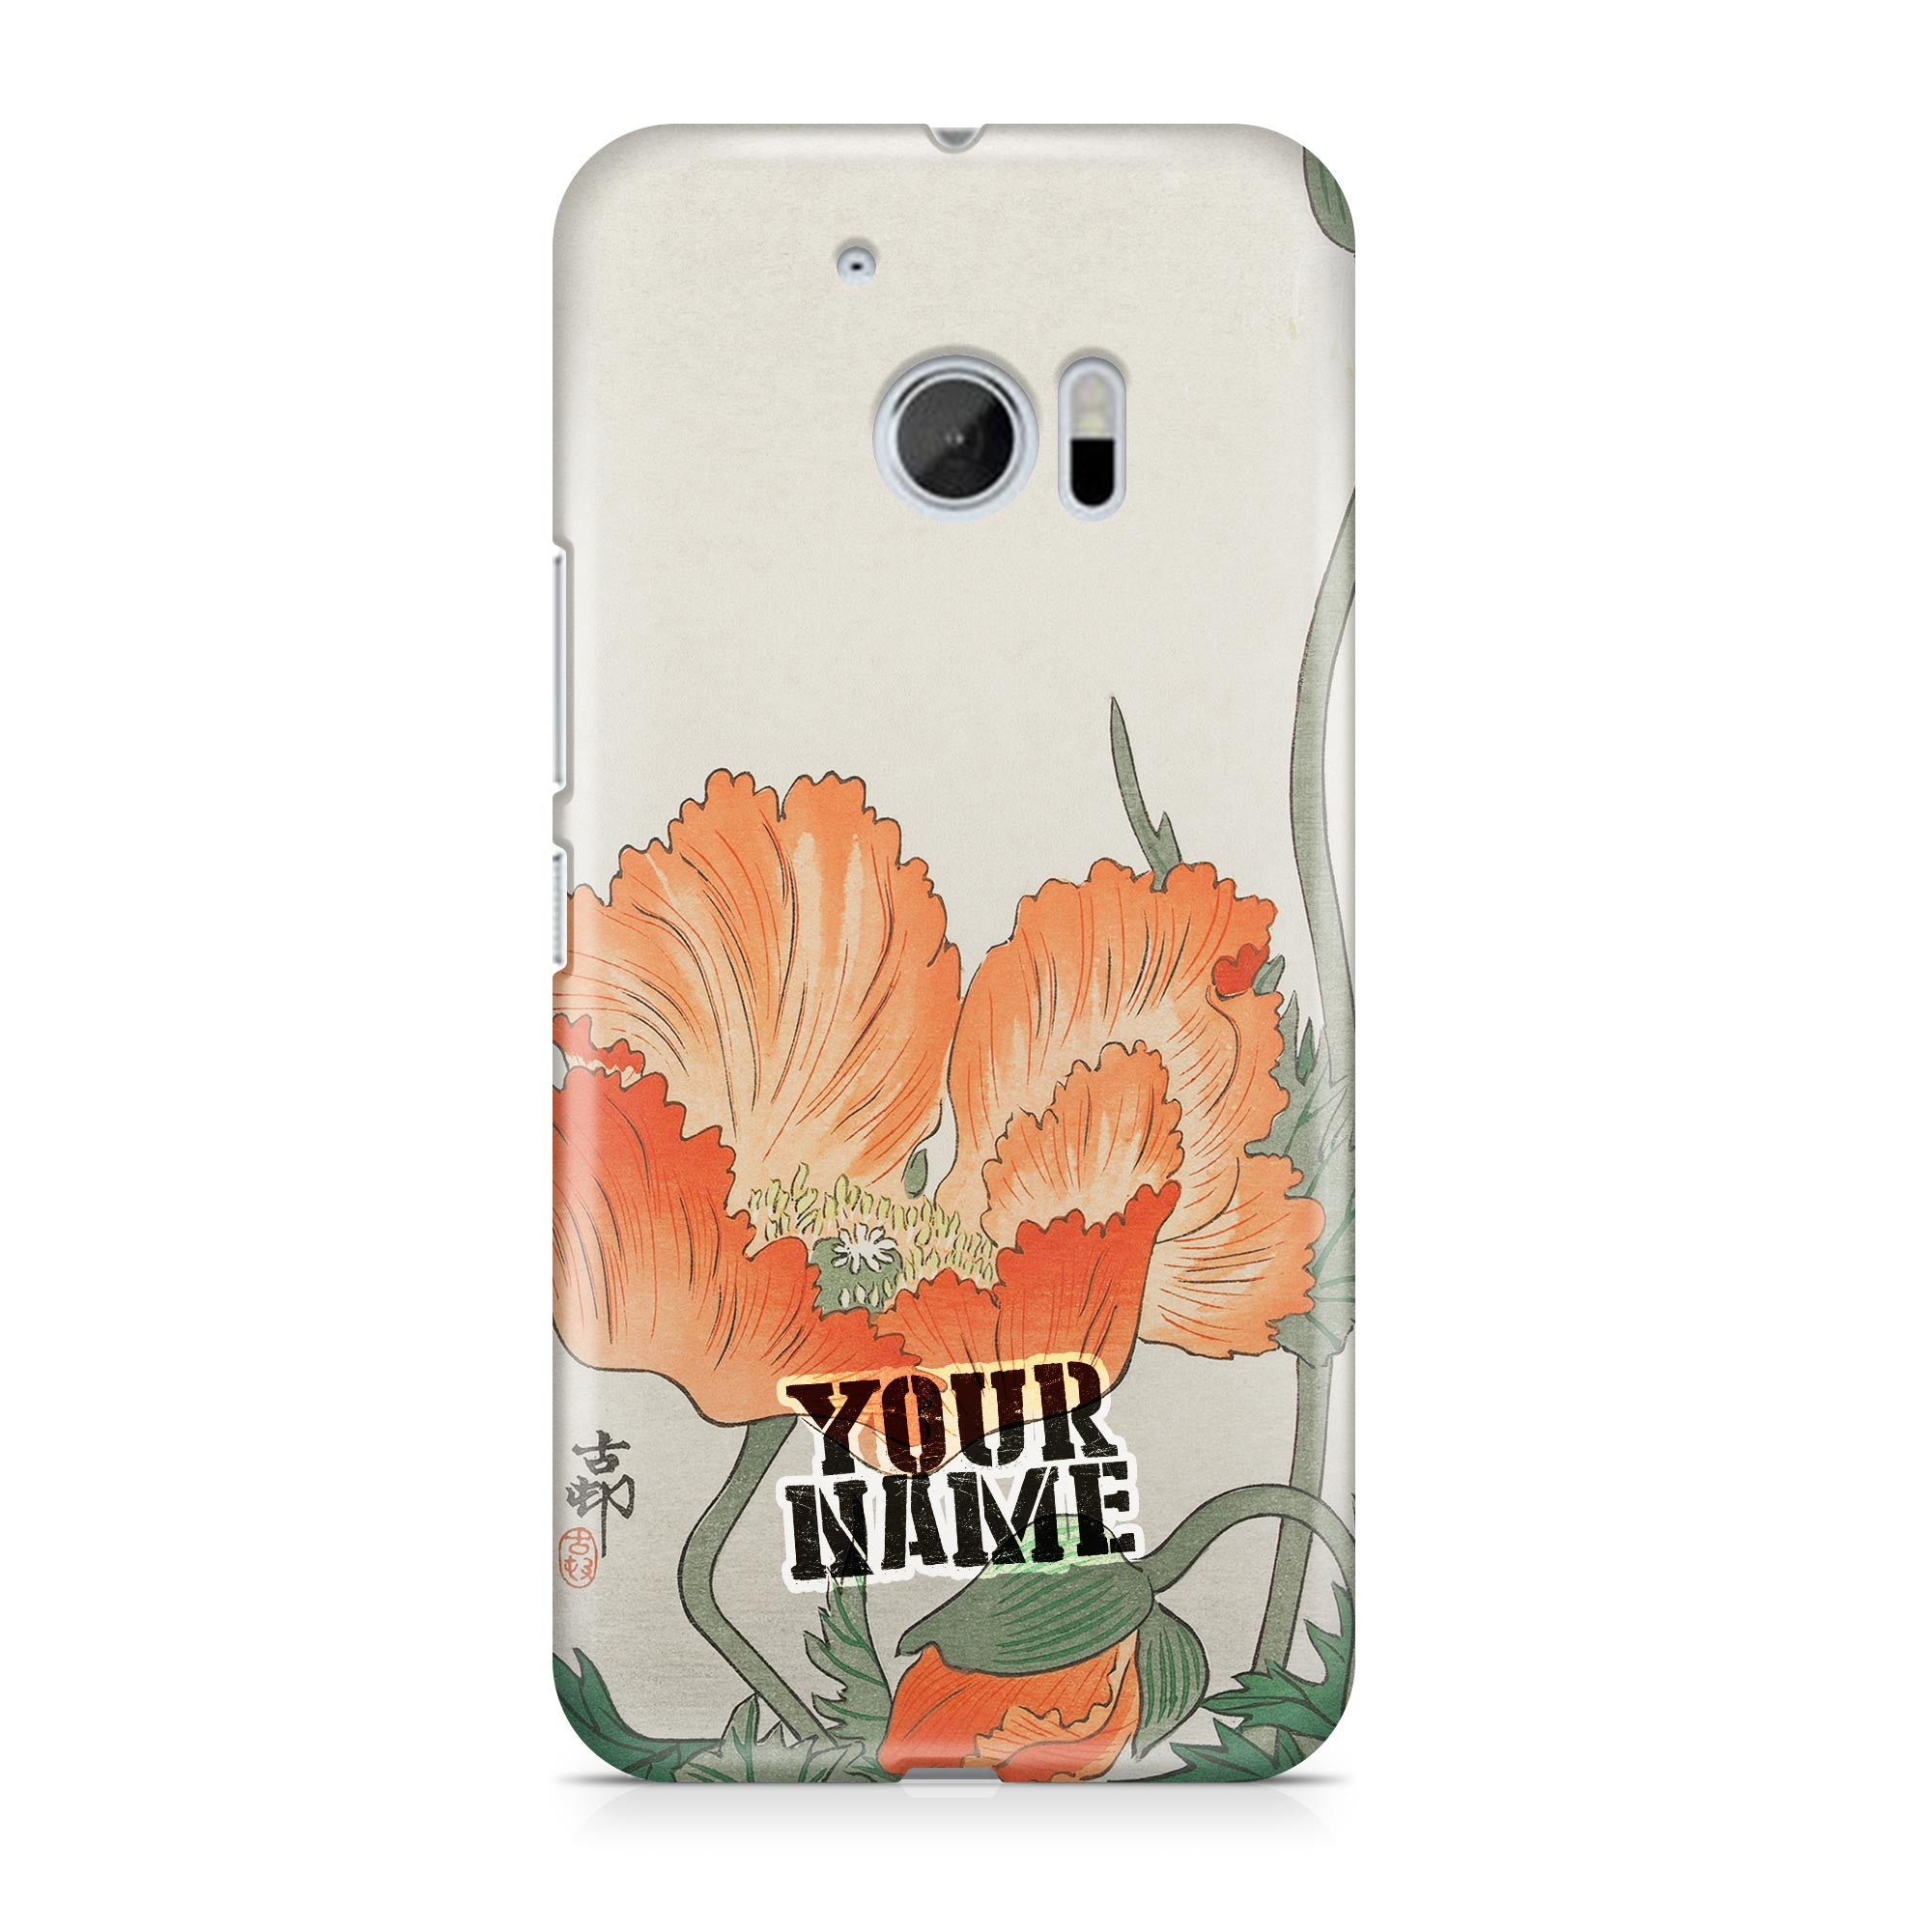 Japanese Flower Old Painting Phone Cases Cover